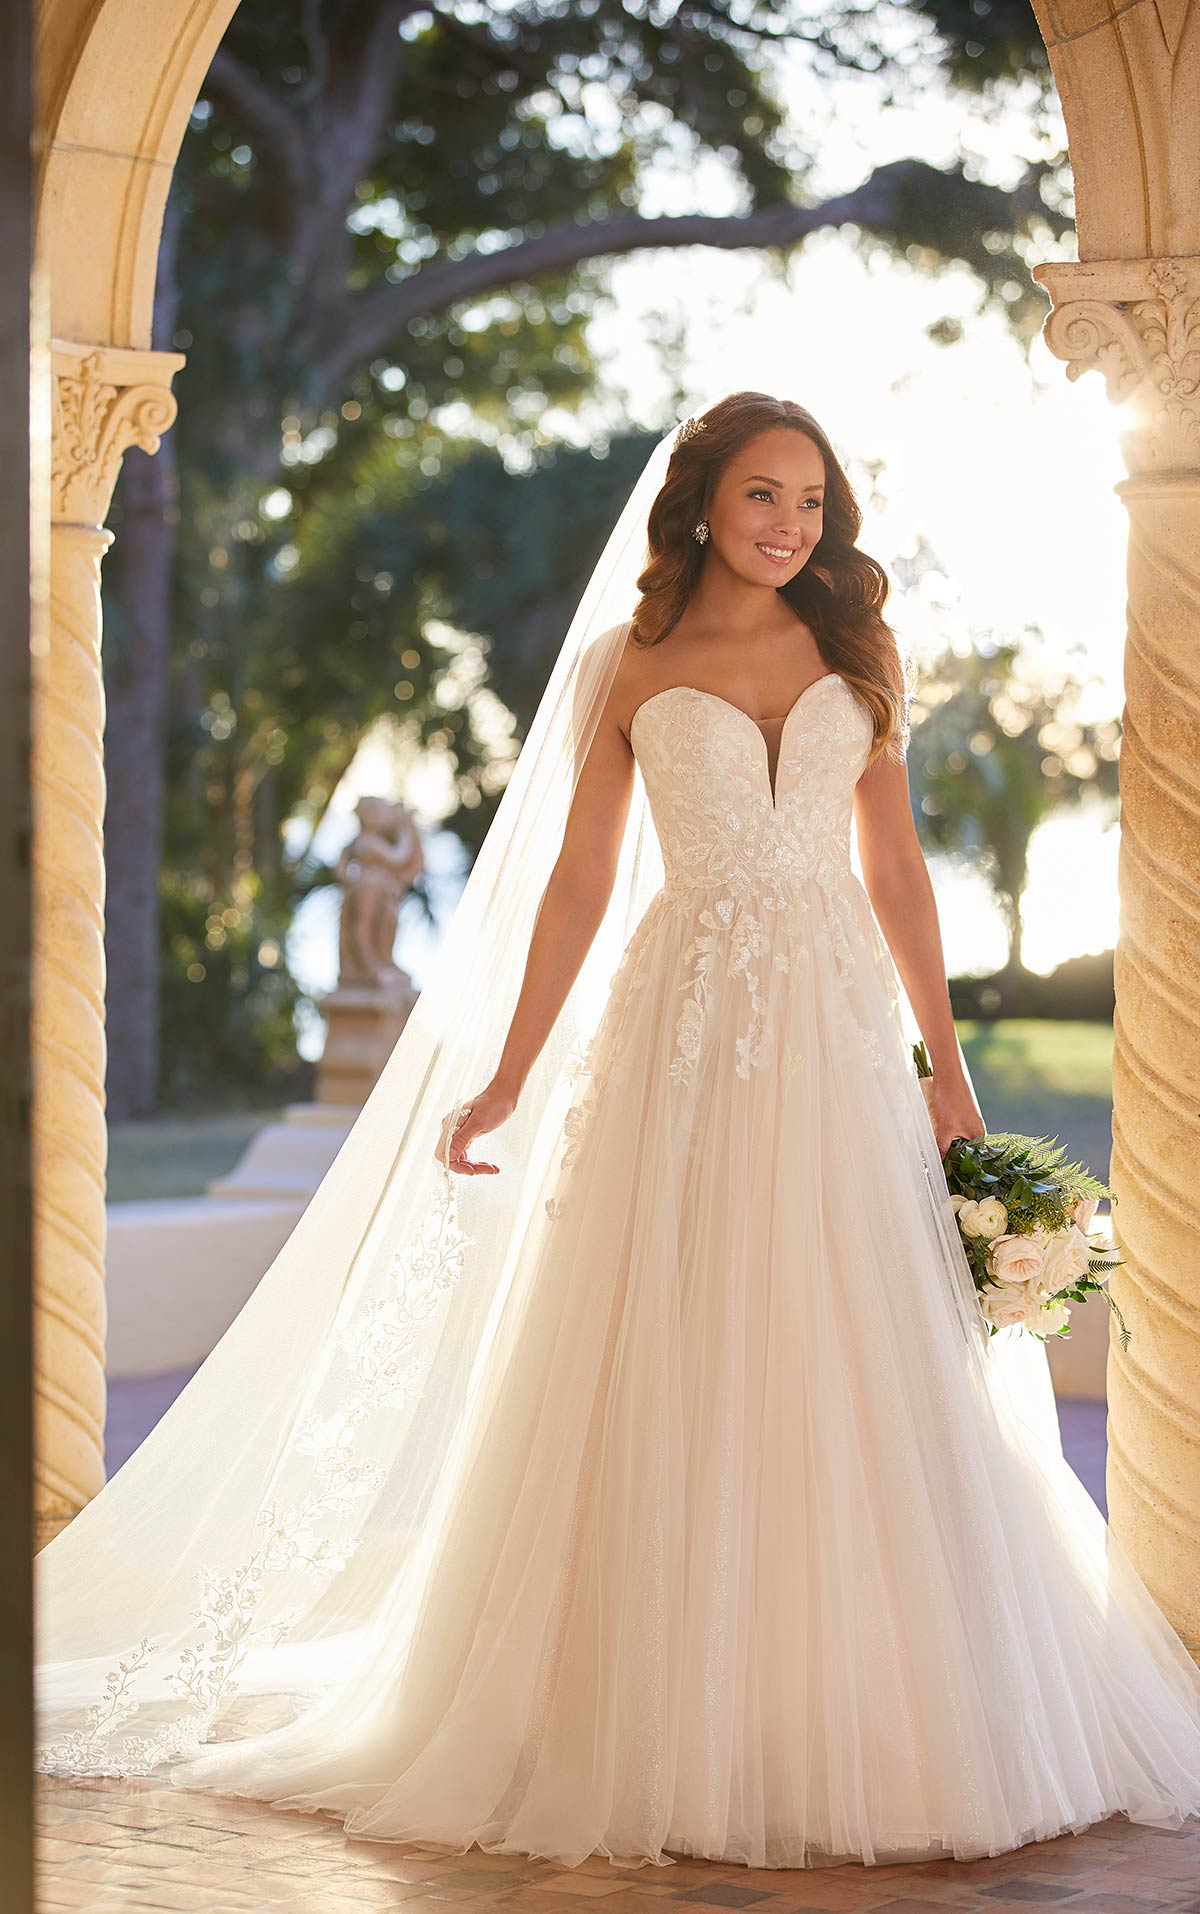 Jacey-7077-Stella-York-Classic-Sweetheart-Neckline-Tulle-Lace-Bridal-Dress